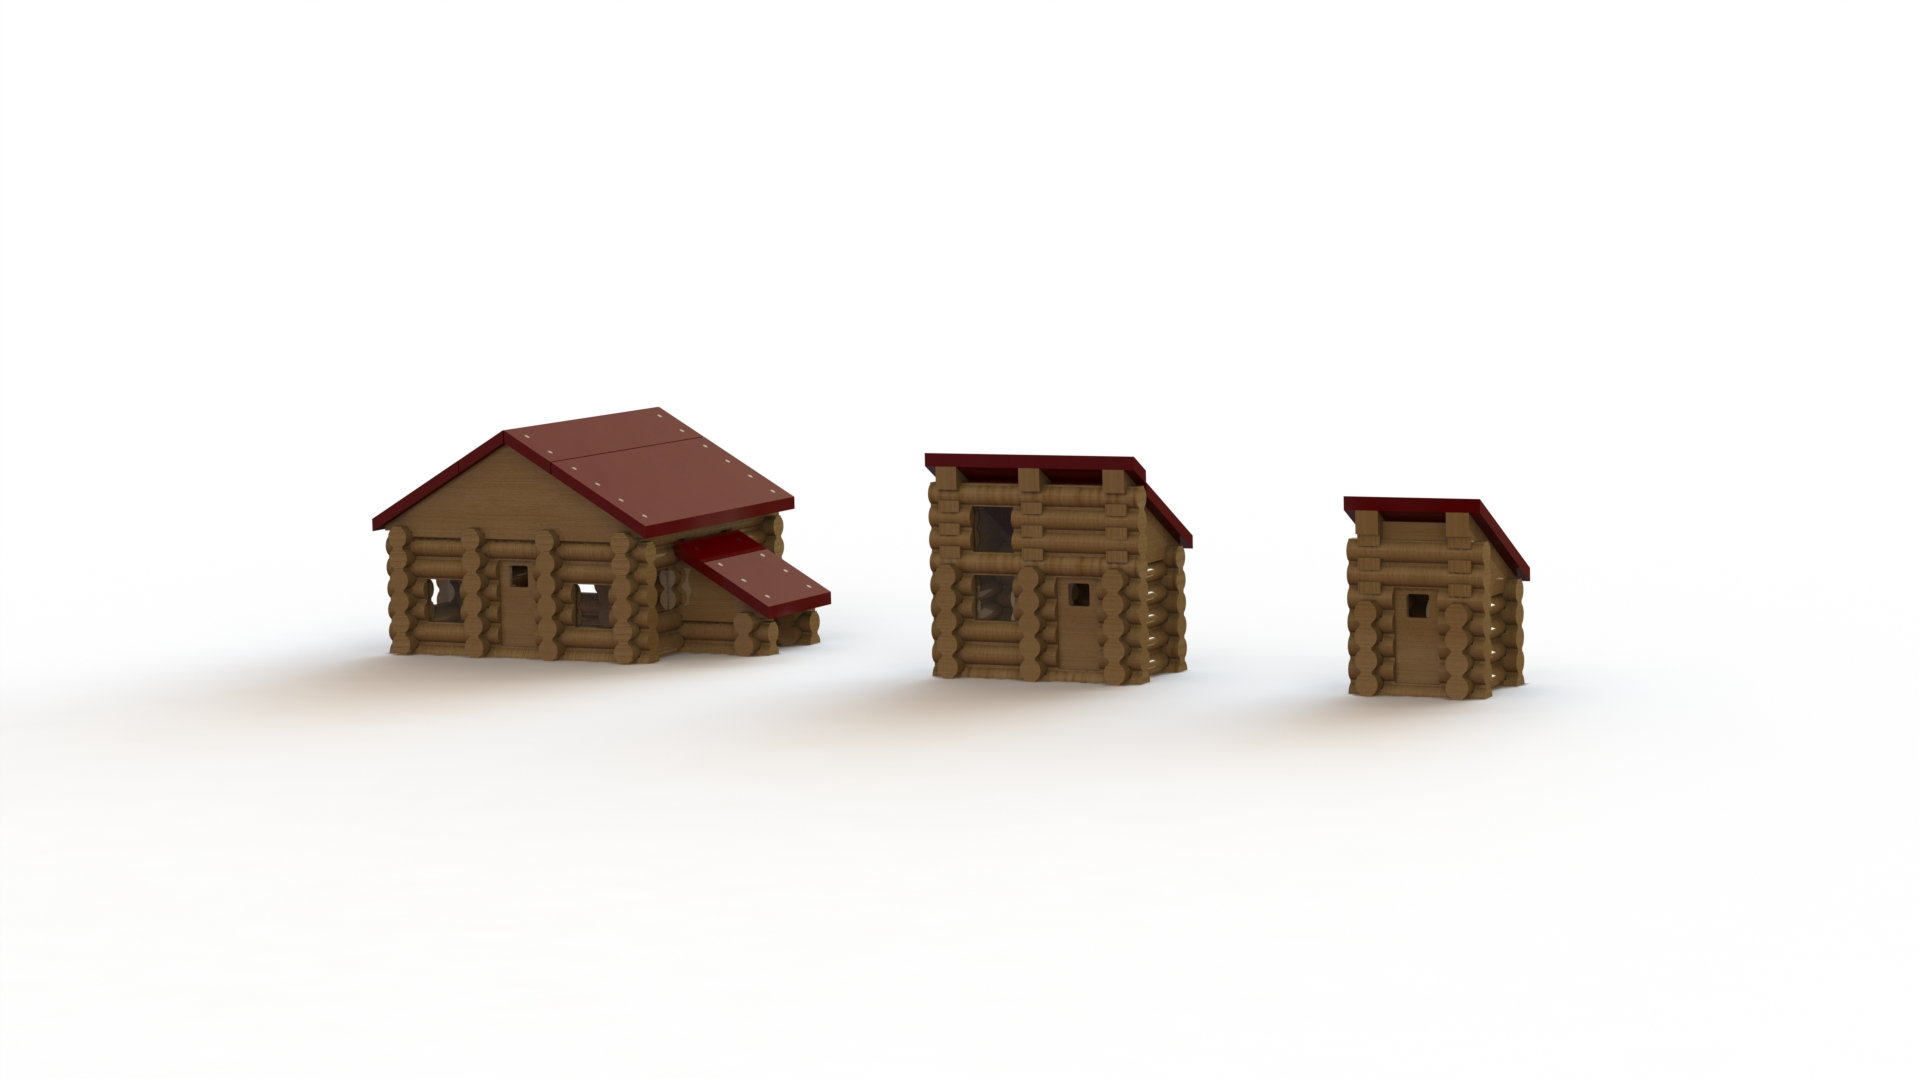 Creating a Log Cabin in SolidWorks – Part 20: Rendering the Log Cabin Assembly